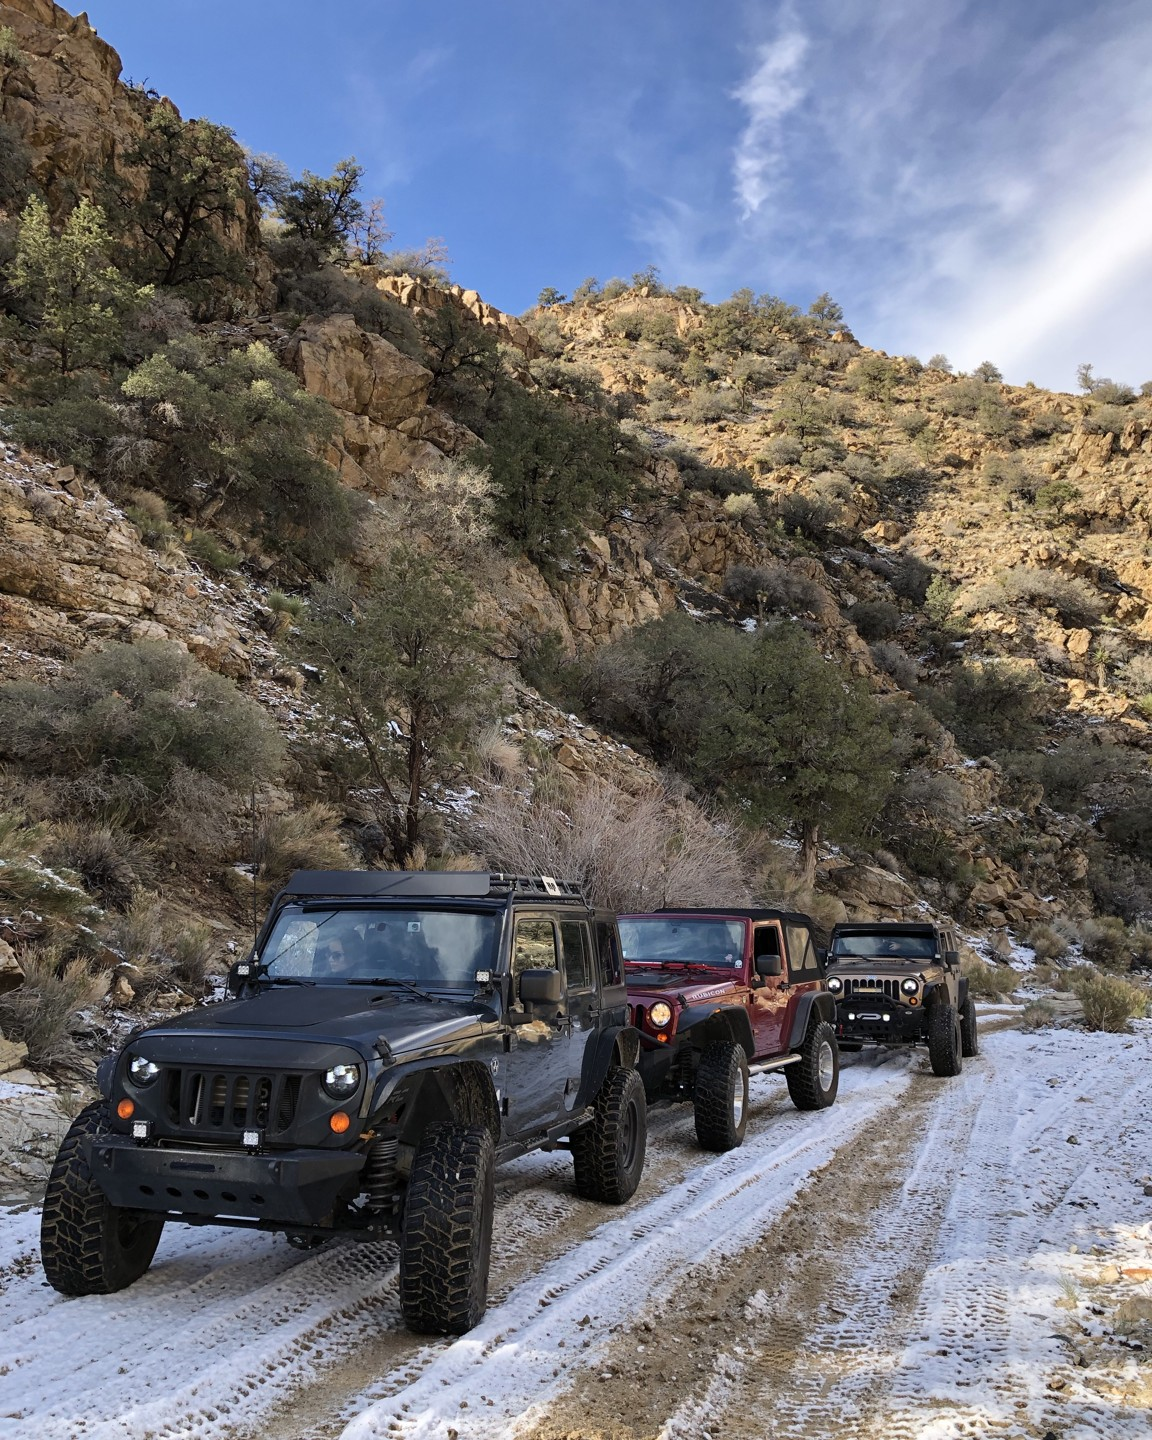 Trail Review: Rattlesnake Canyon - RC3331